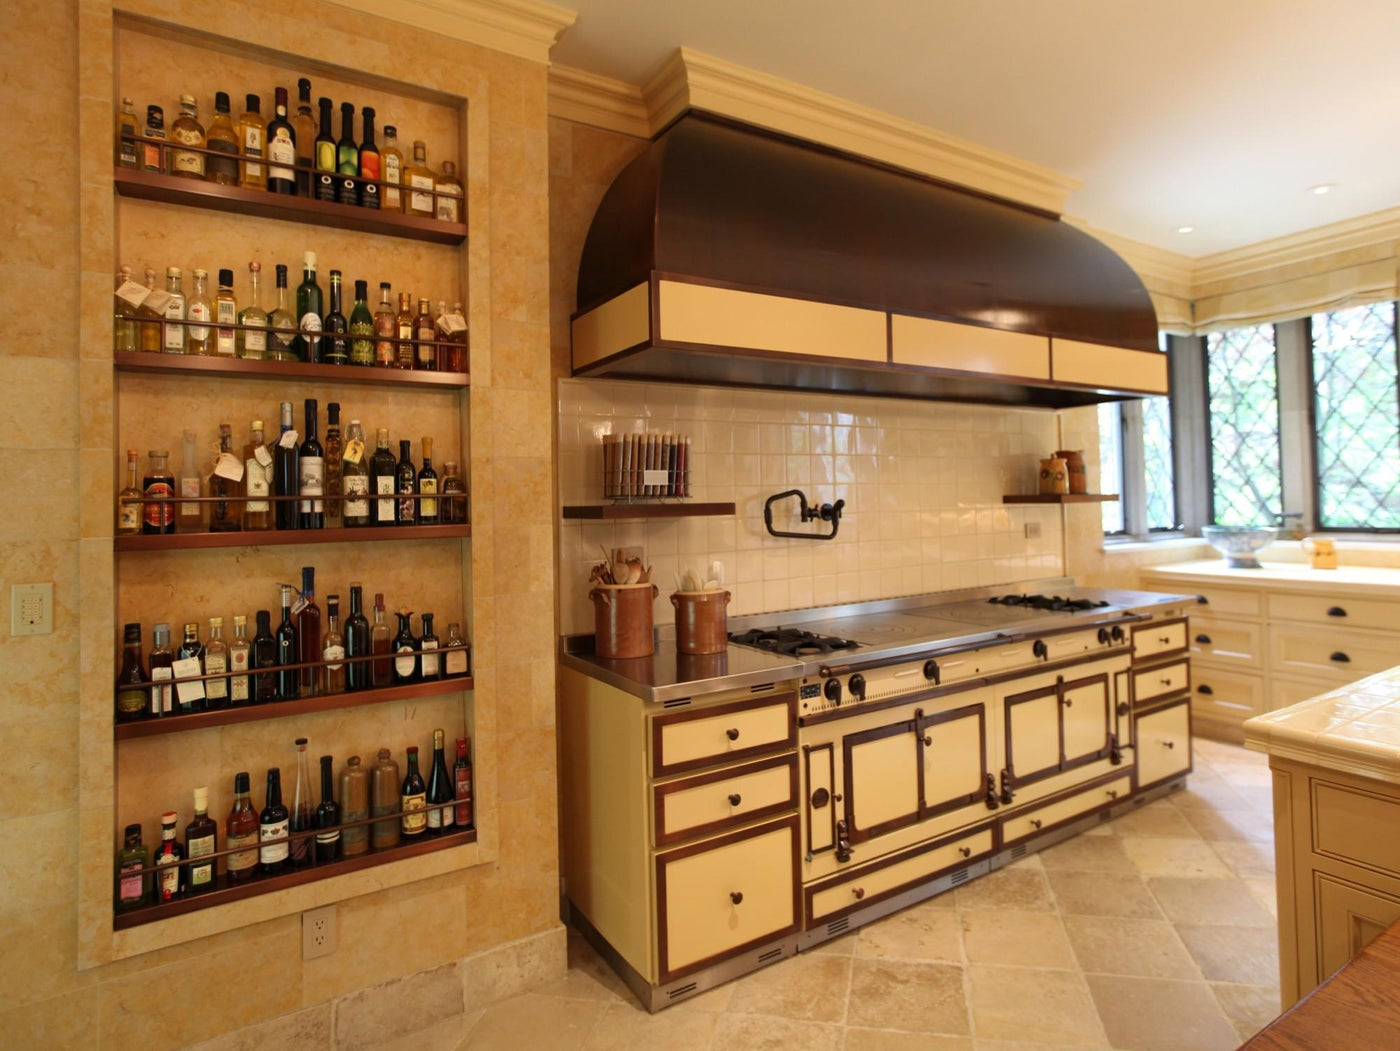 Making your kitchen space ingeniously accommodate everything you need.